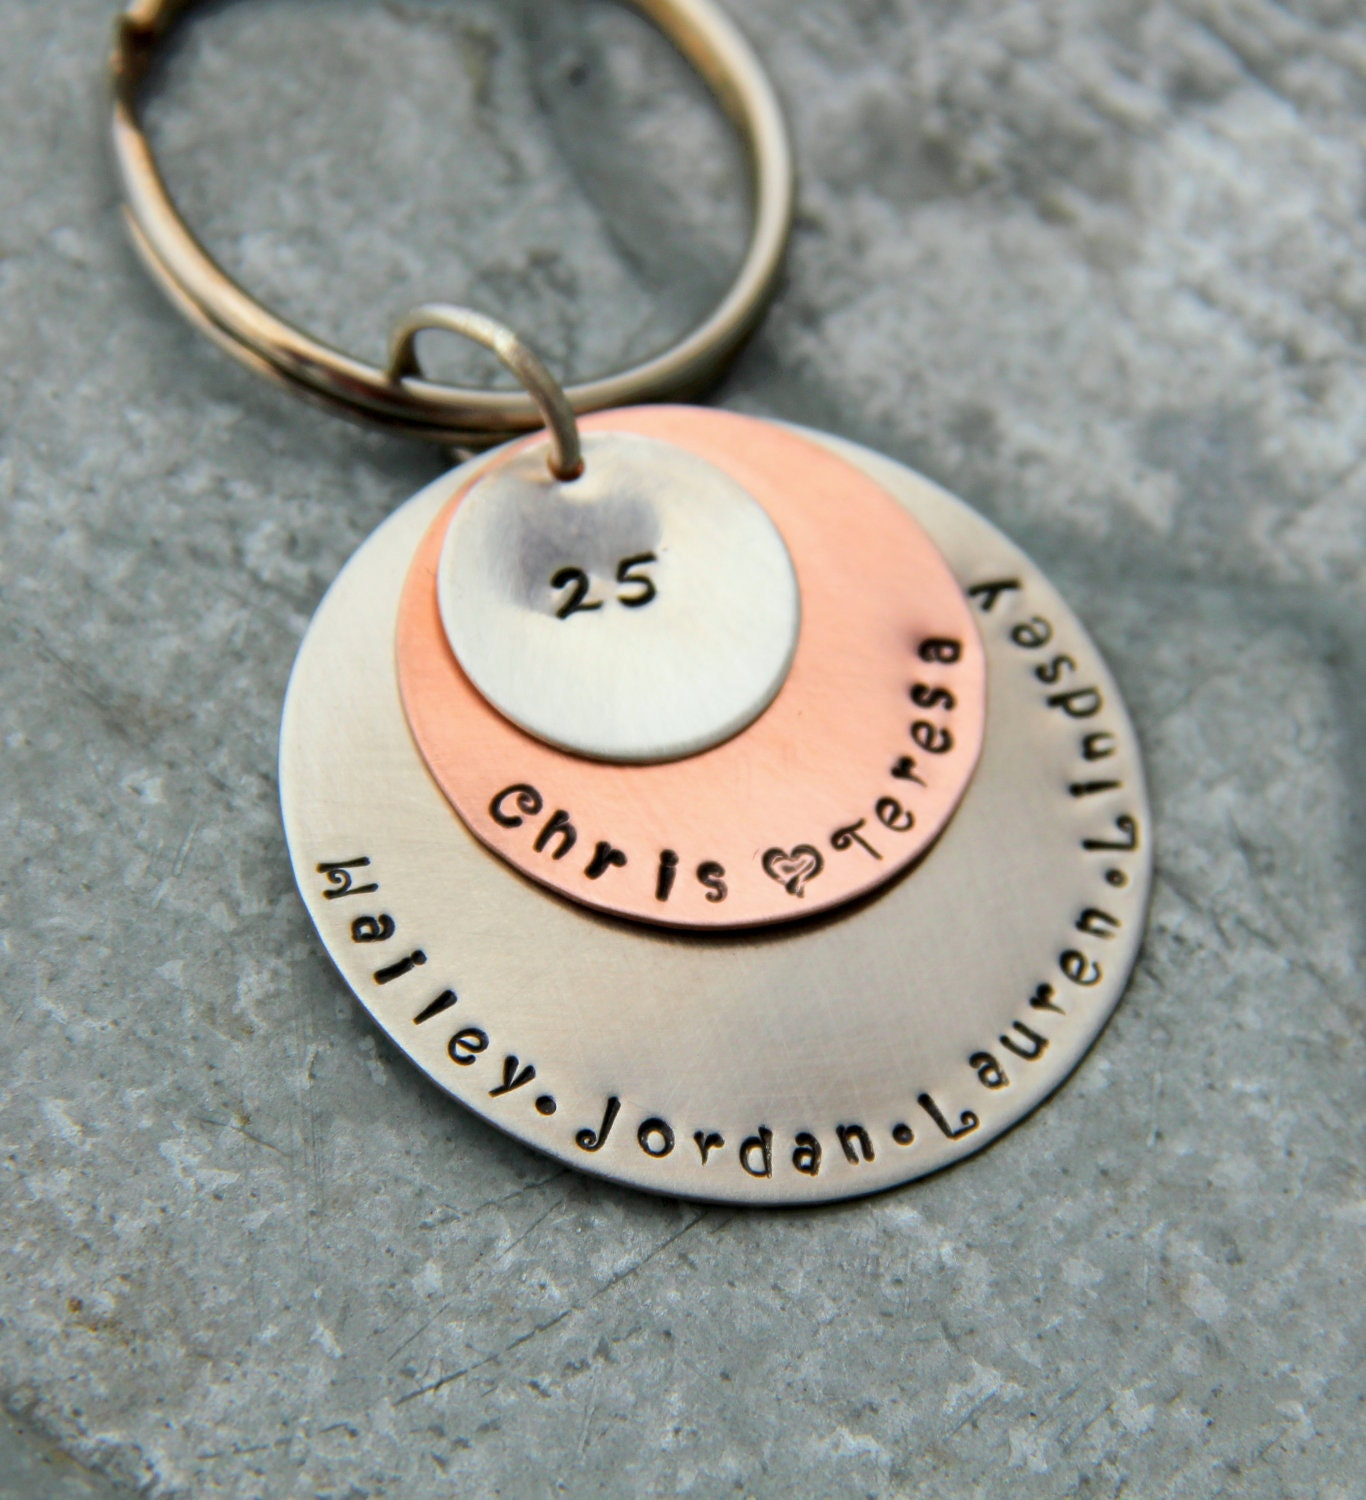 Wedding Anniversary Gifts For Husband Ideas: Anniversary Gift For Husband Wife 25 Years Anniversary Key